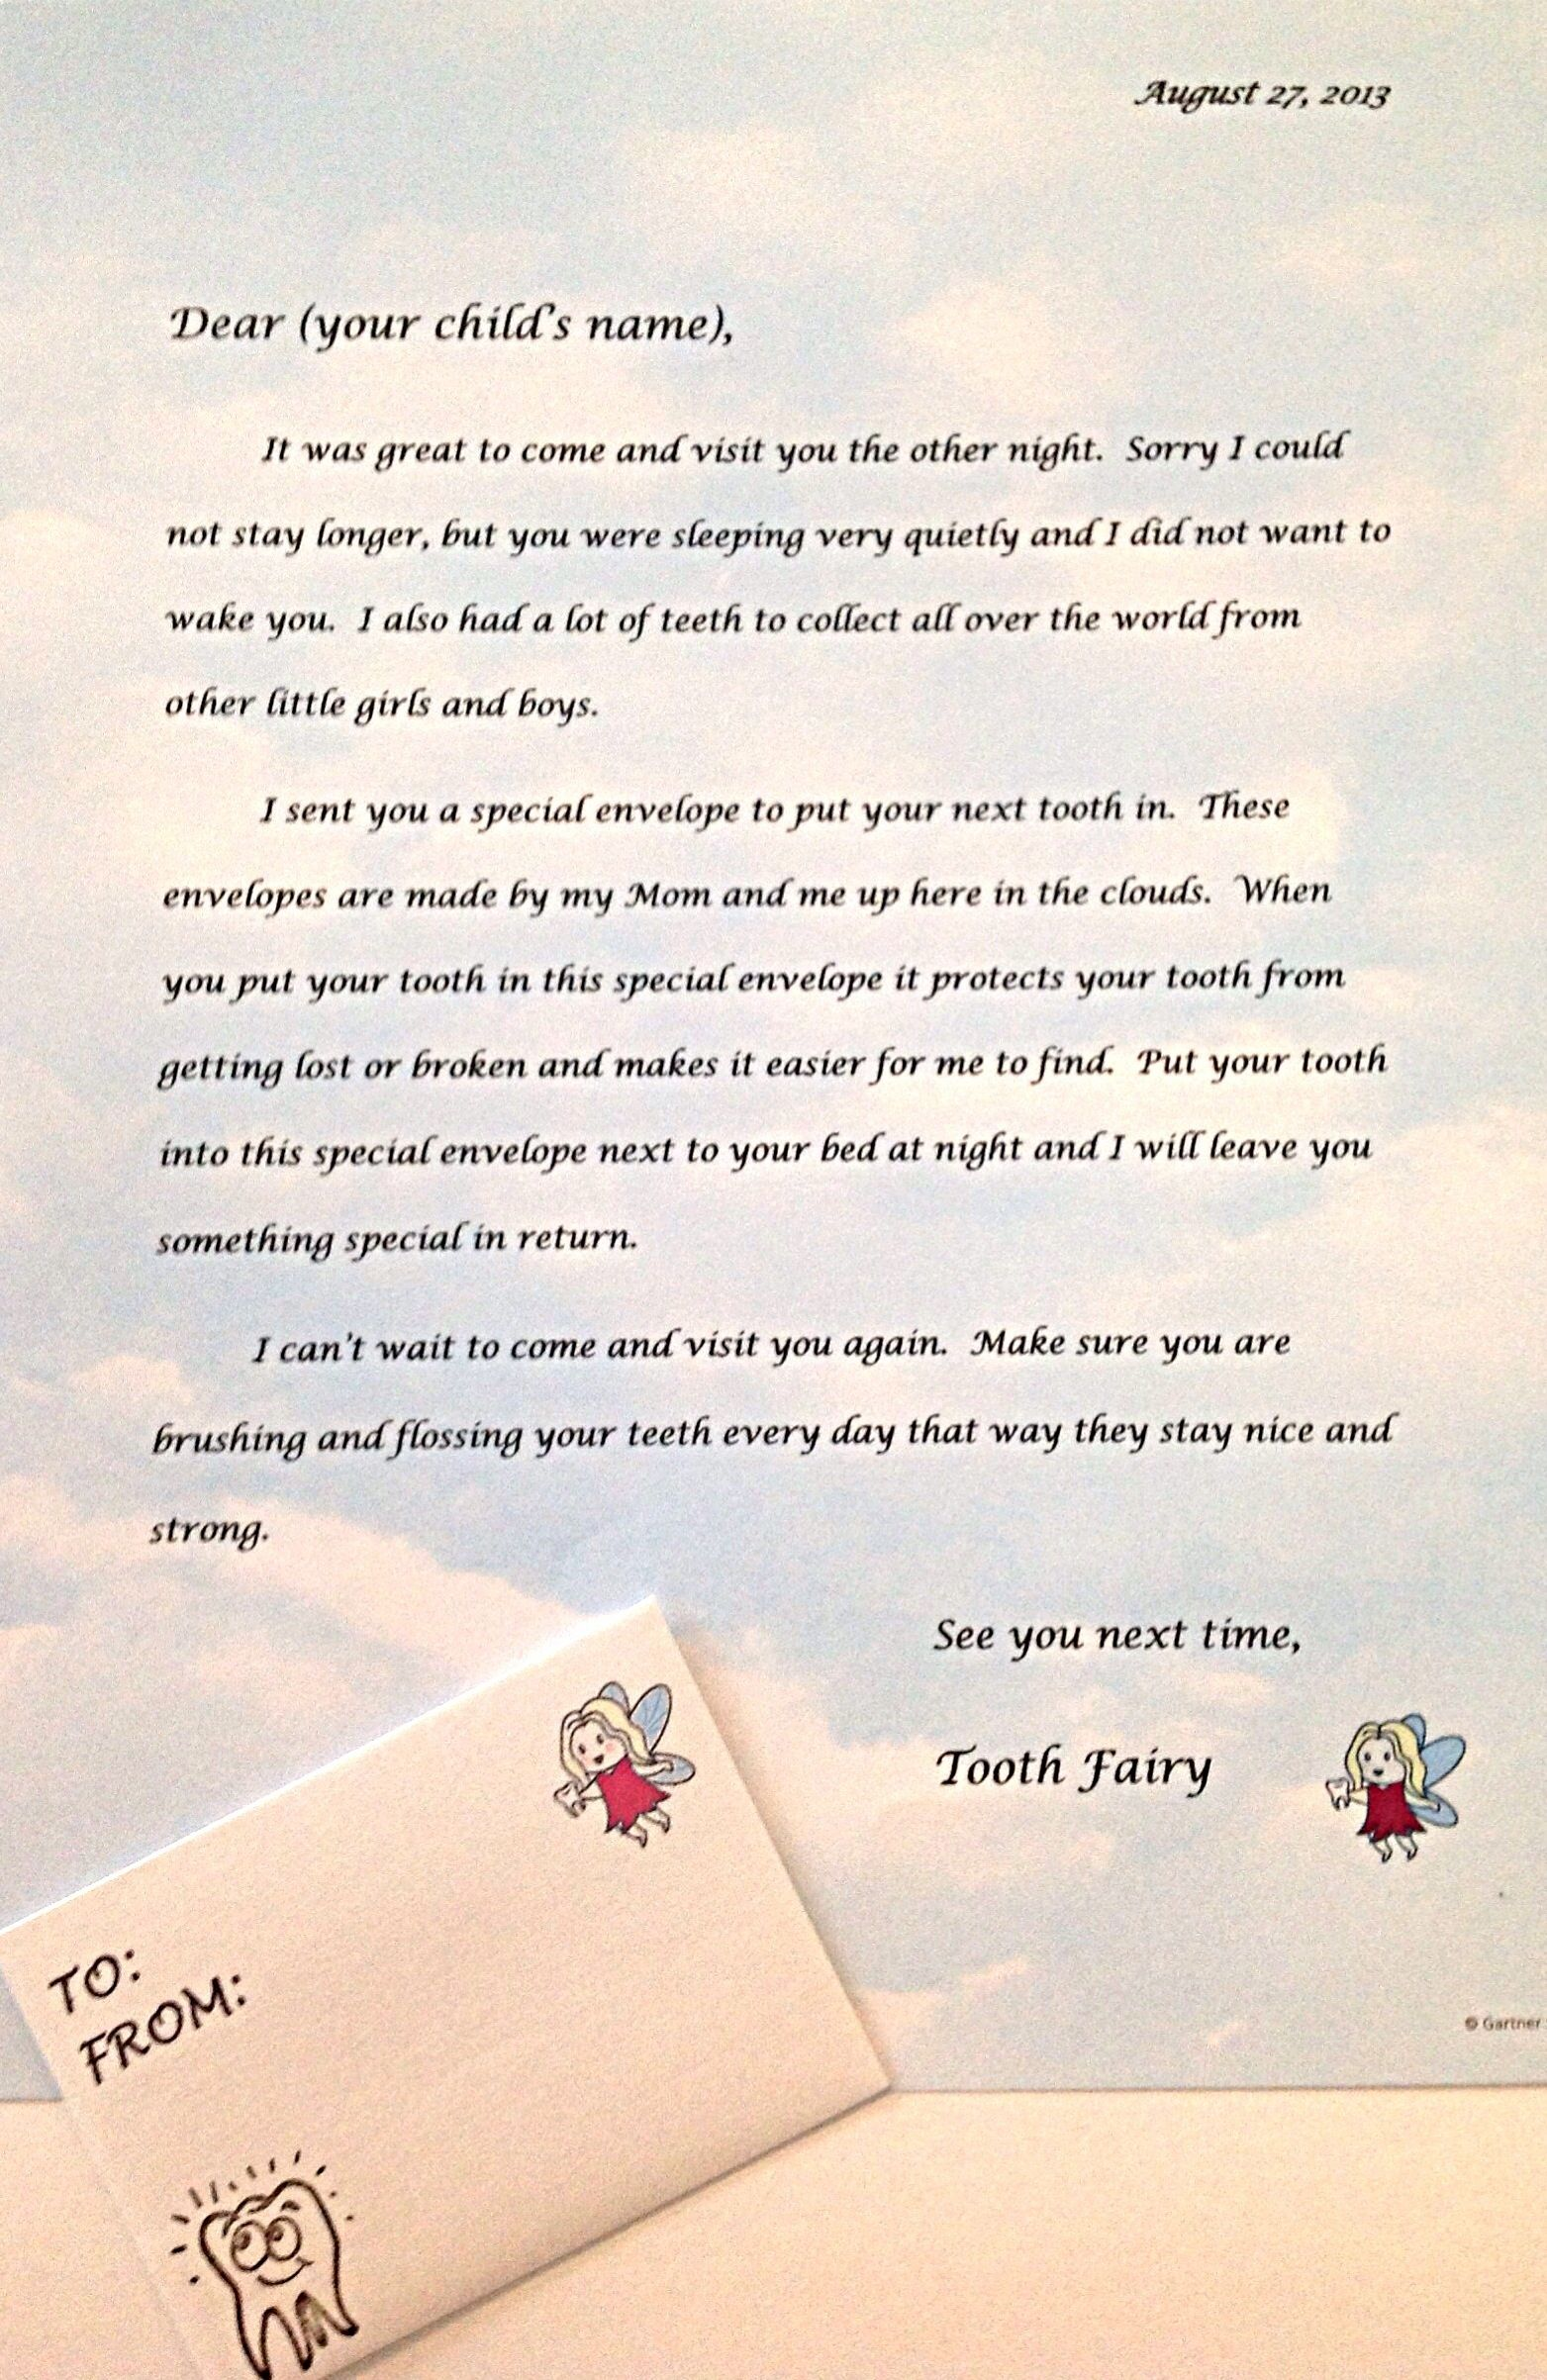 Letter mailed to your child from the tooth fairy